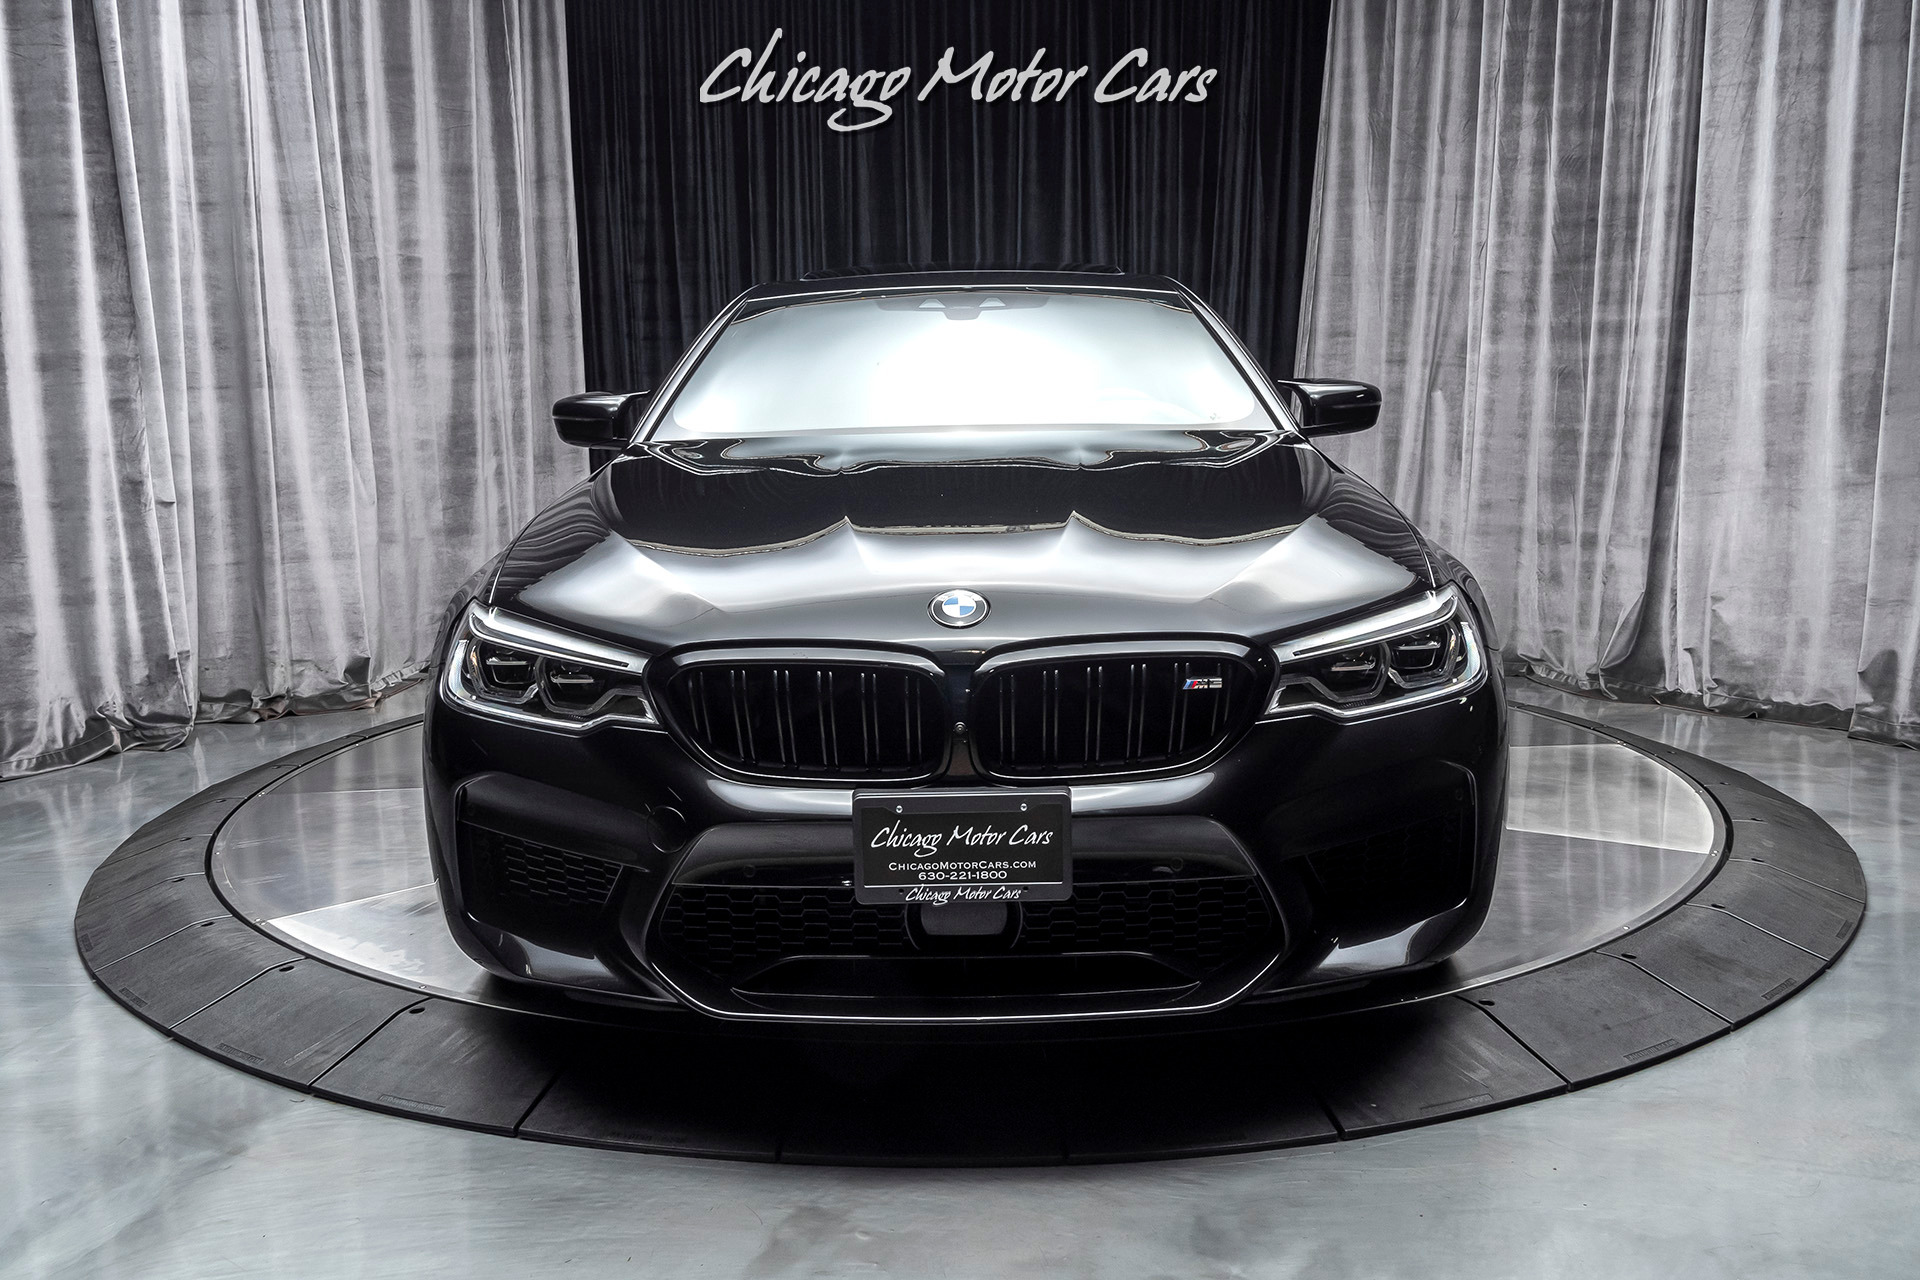 Used-2018-BMW-M5-Executive-Package-and-Drivers-Assistance-Plus-Package